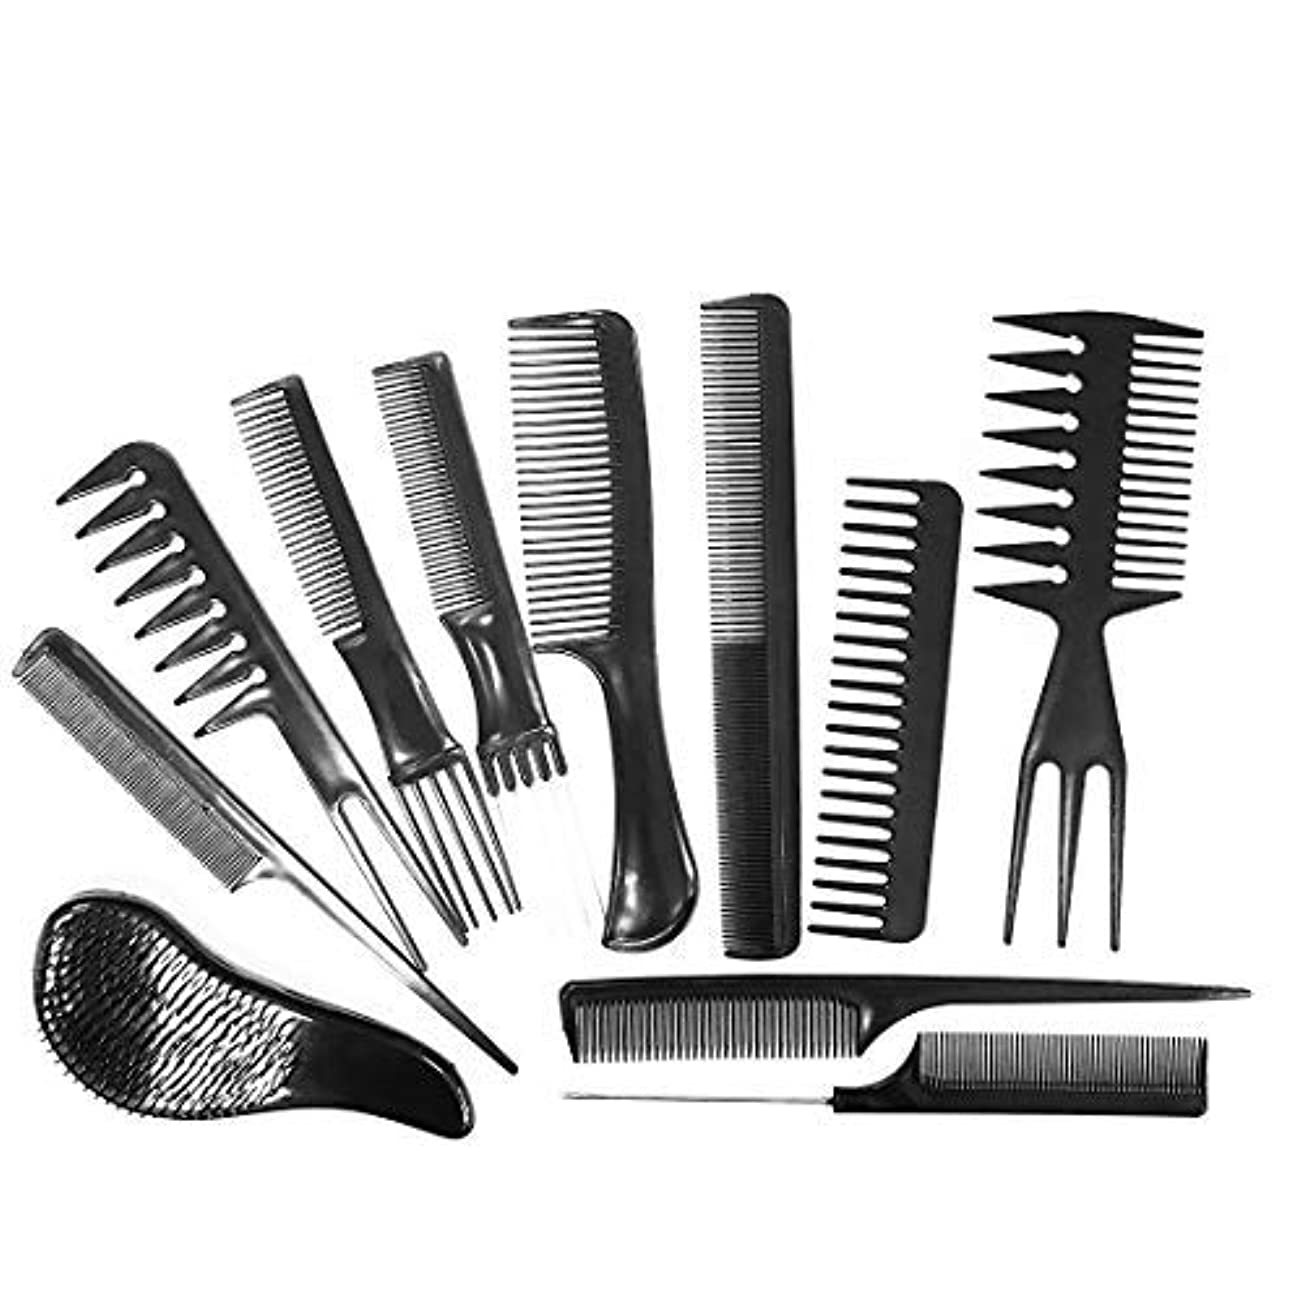 非武装化シャイニングレガシーDaimay Professional Hair Styling Comb Set Hair Styling Clips Salon Hair Styling Barbers Comb Set Variety Pack...